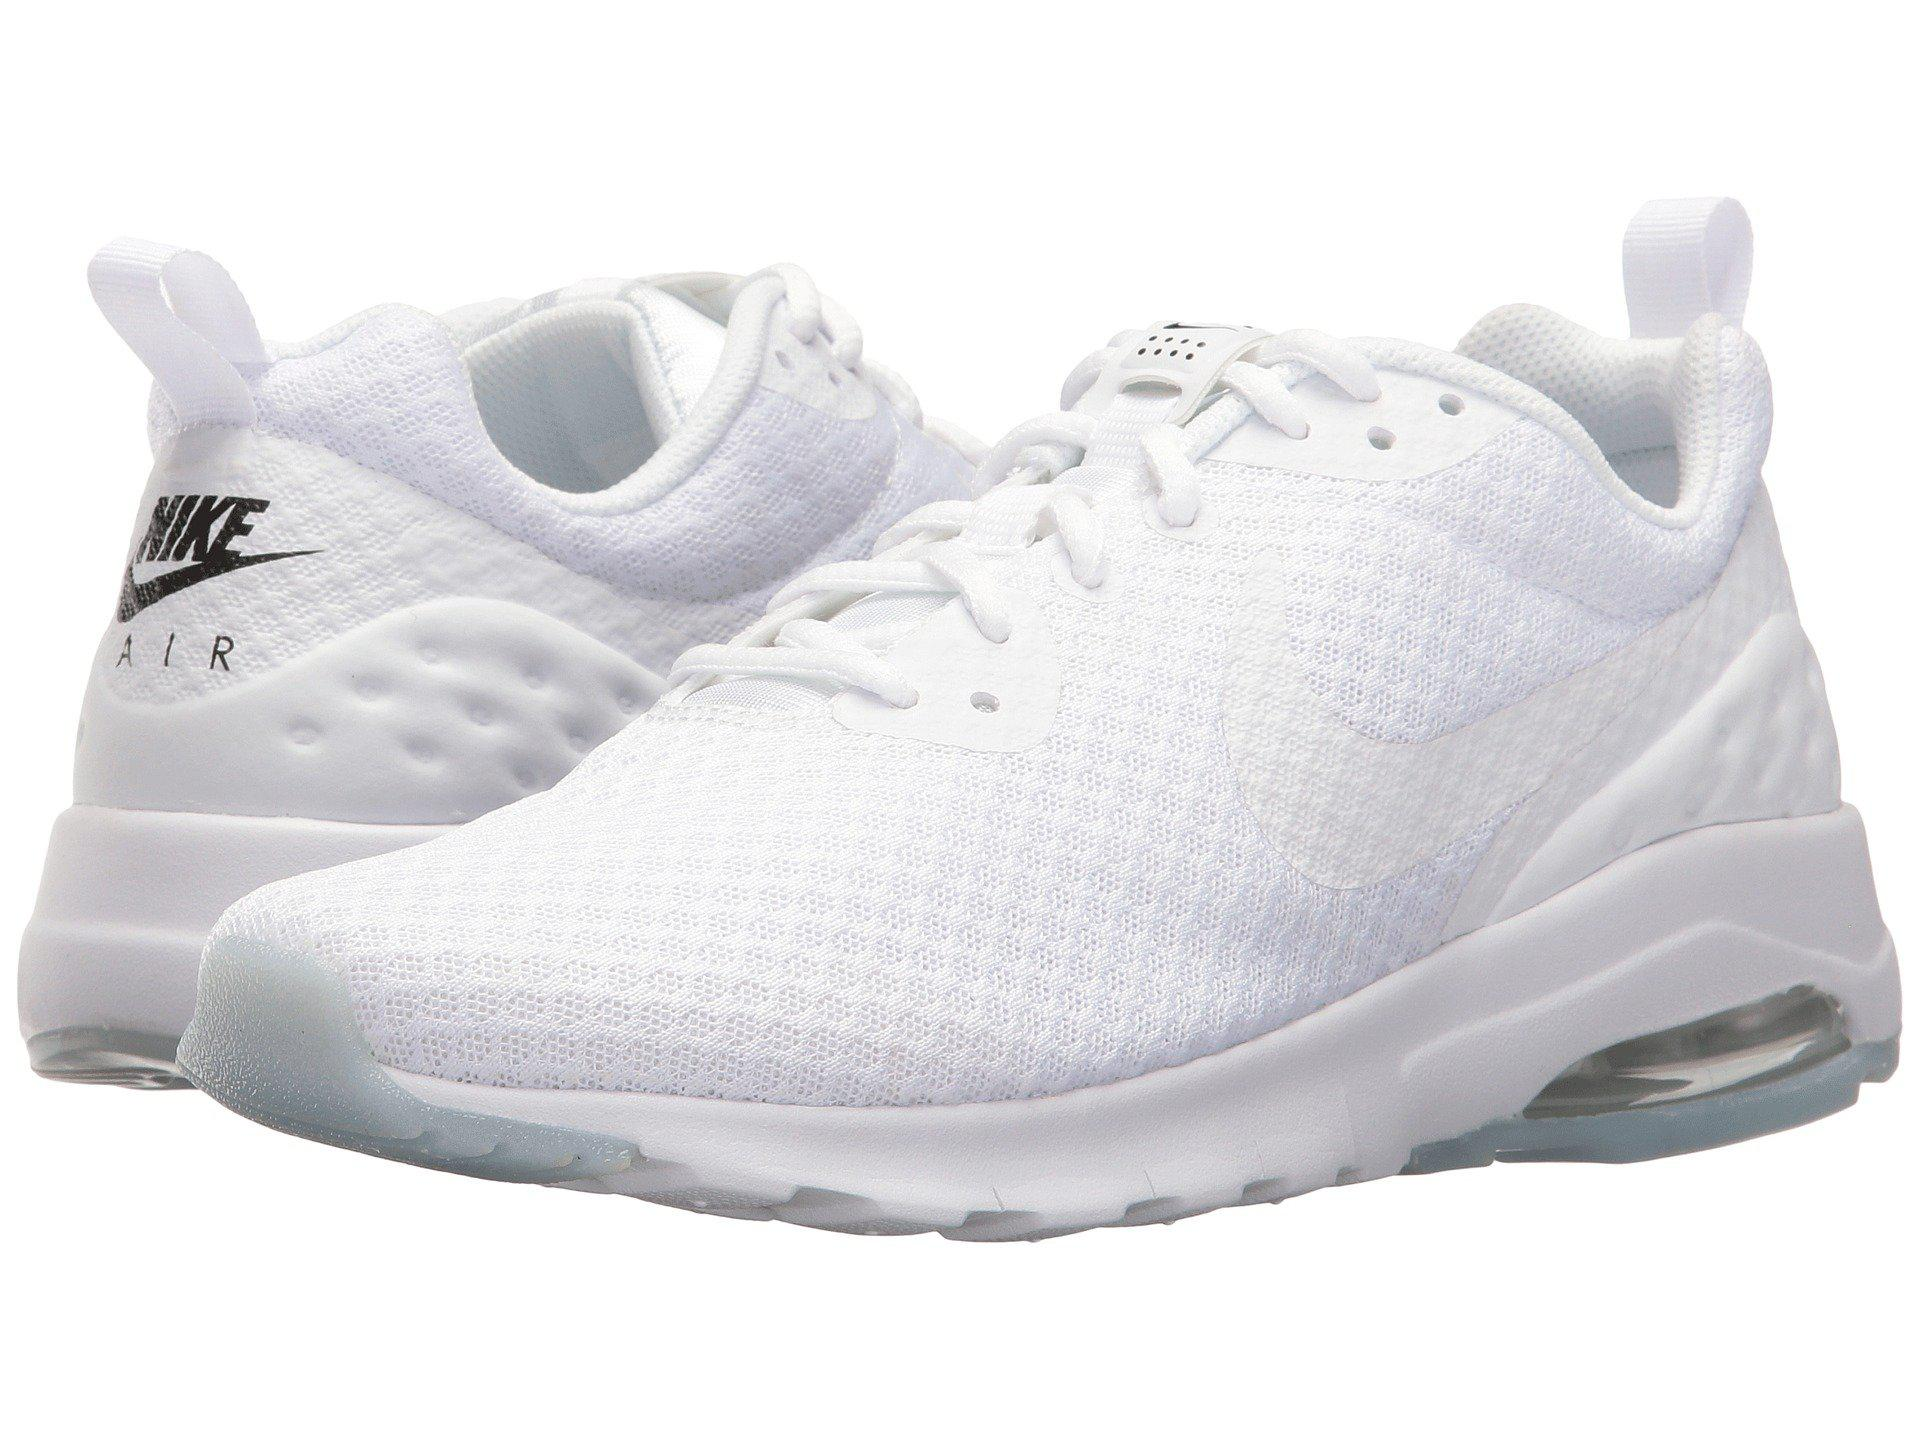 965d7eaf1198 Gallery. Previously sold at  Zappos · Women s Nike Air Max Men s ...